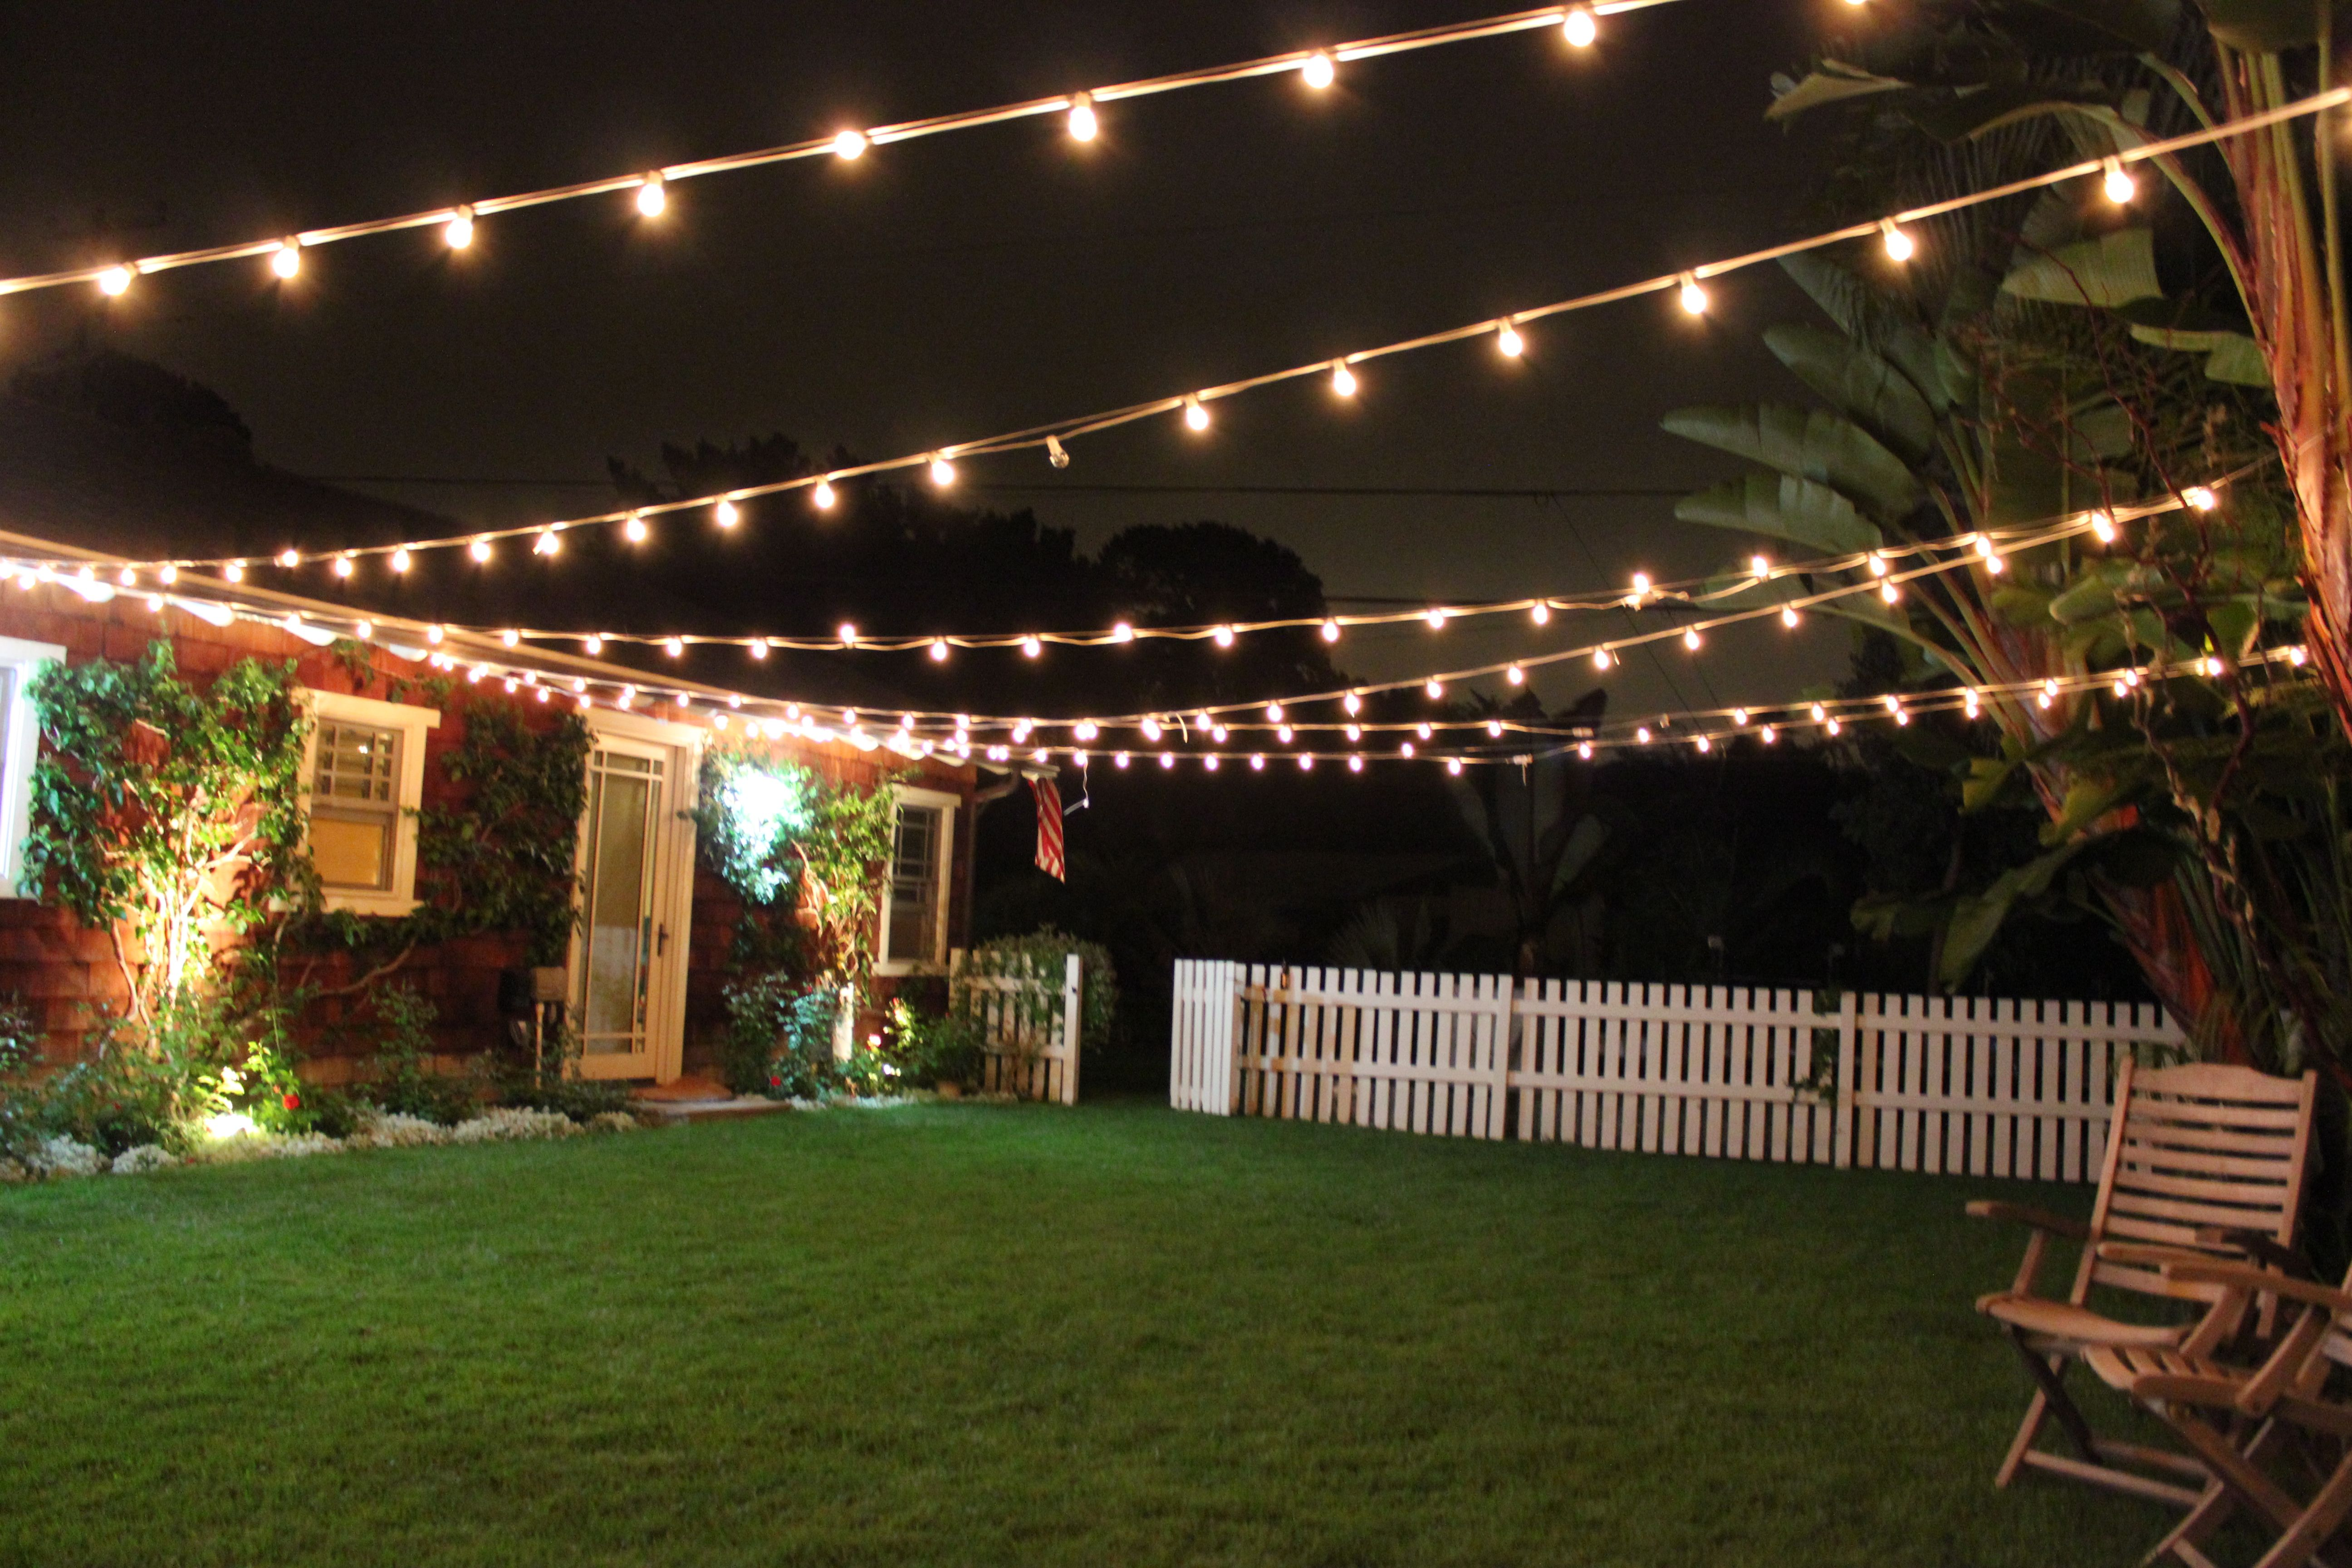 Patio Cafe style lighting adds so much beauty and charm to